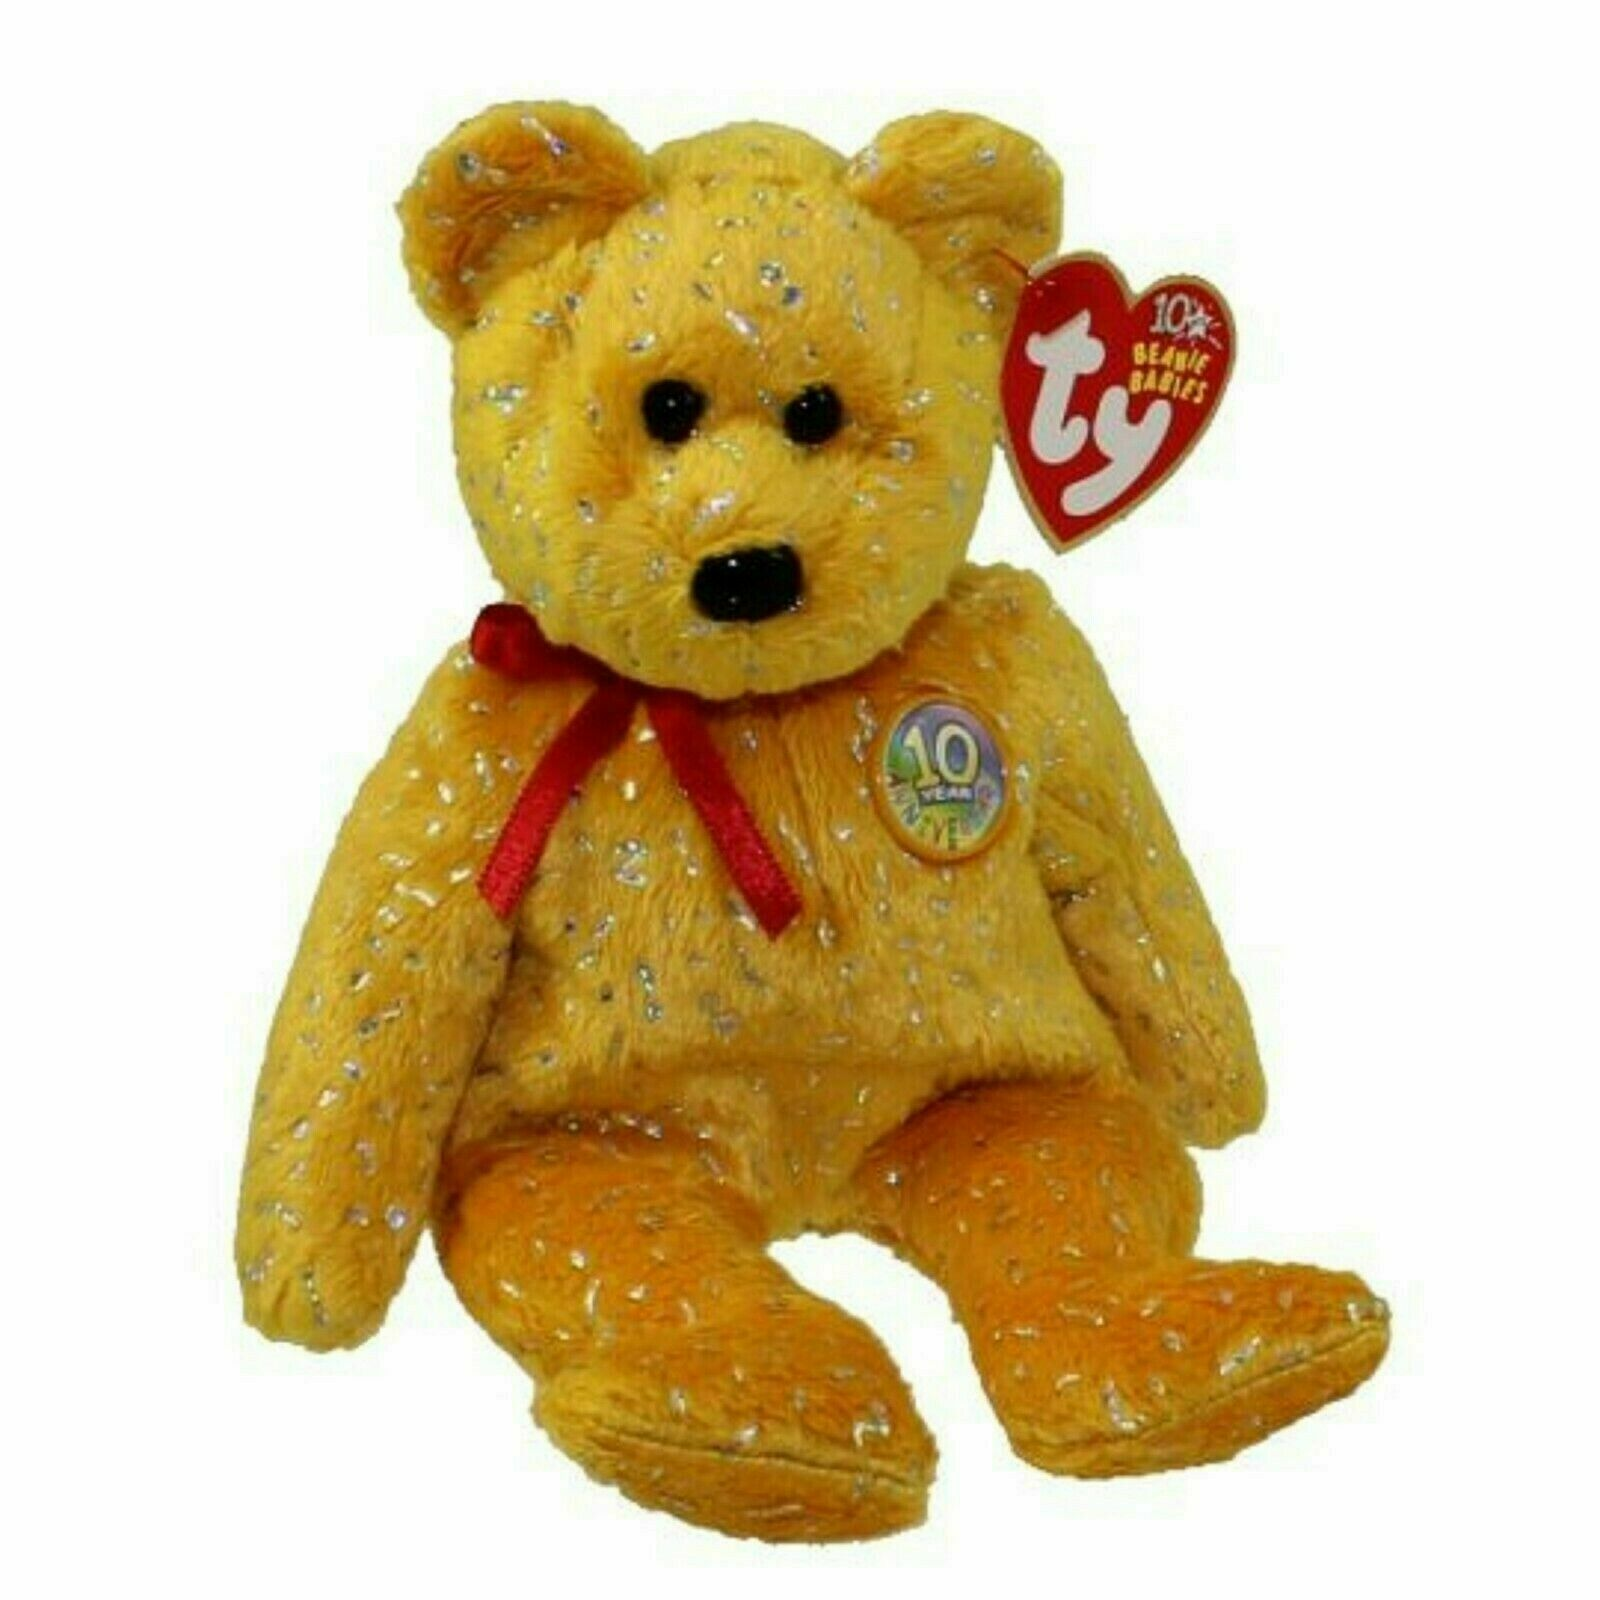 MWMT for sale online Ty 2003 Decade The 10th Anniversary Bear Blue Beanie Baby